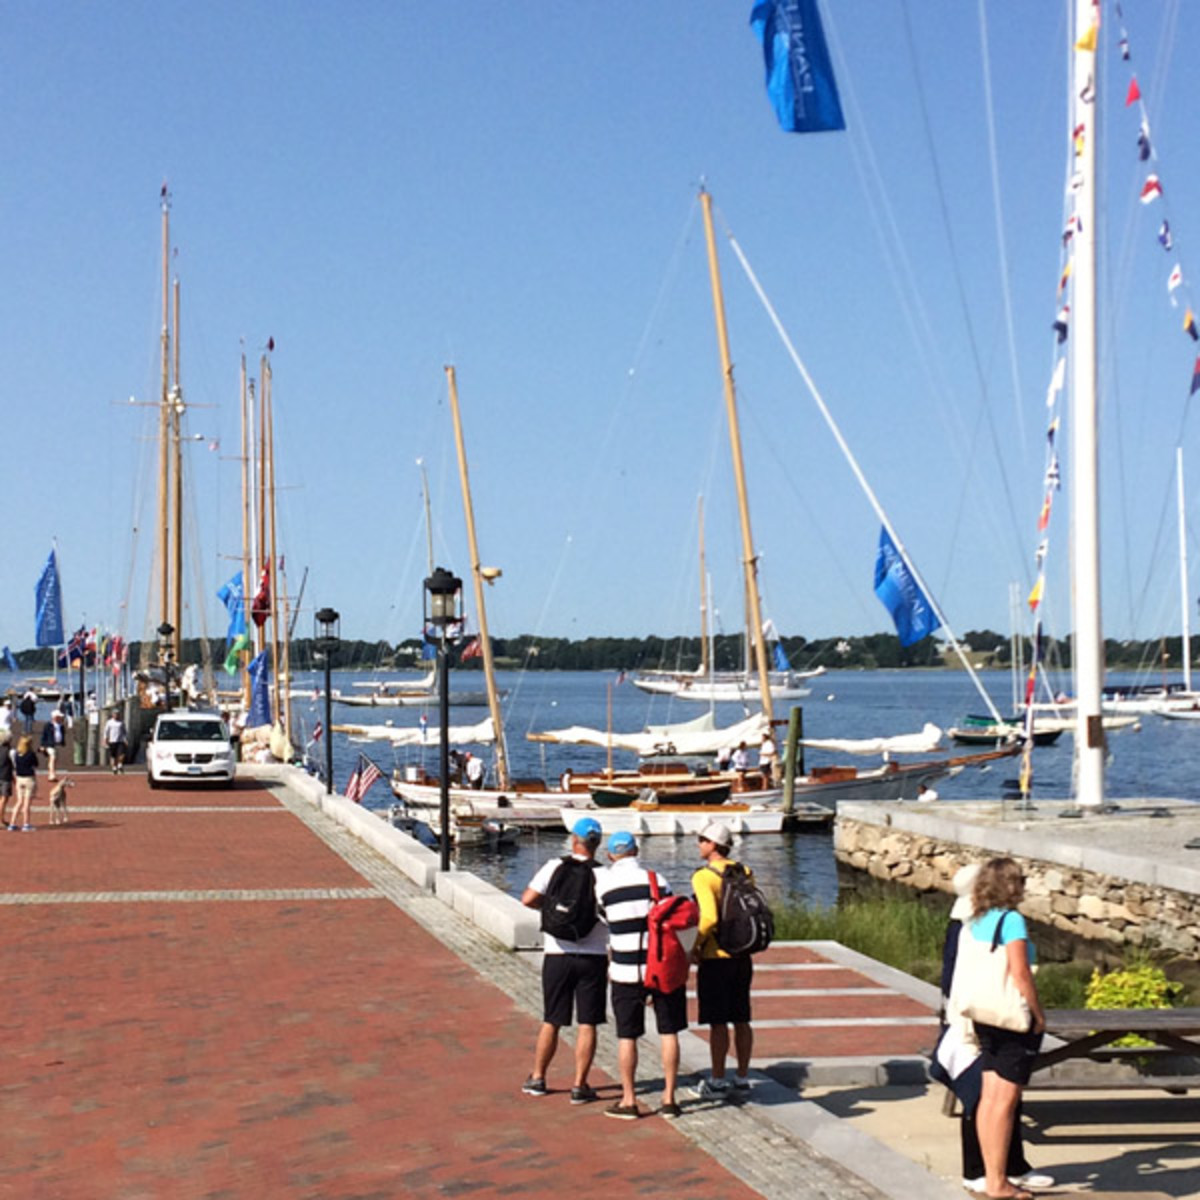 The Herreshoff Museum on Saturday before the   Narragansett Bay Classic Yacht Rendezvous.